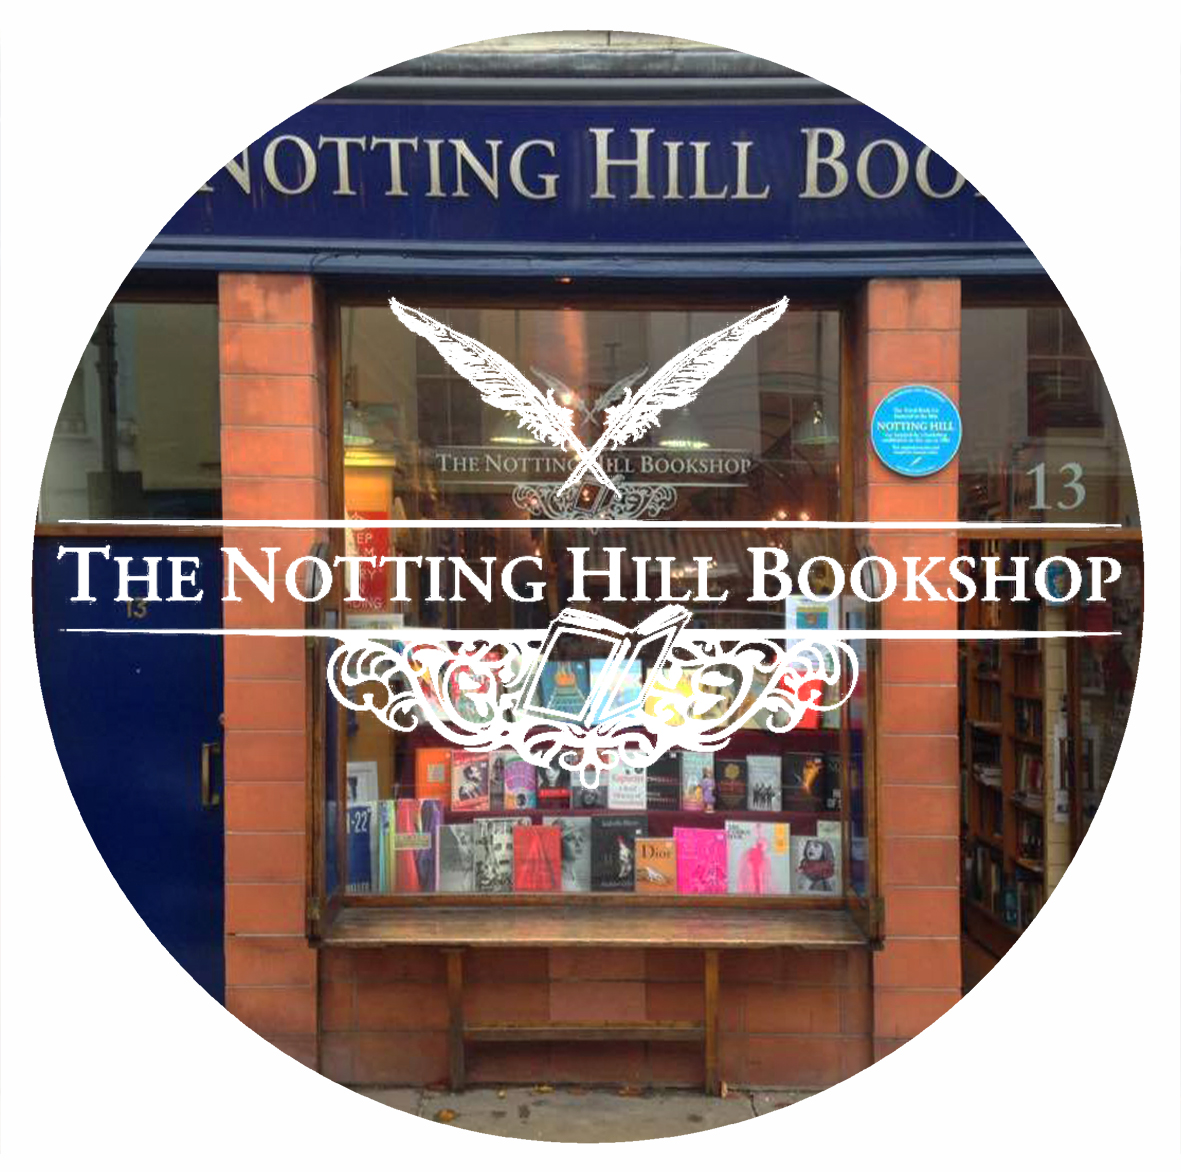 THE NOTTING HILL BOOKSHOP  13 Blenheim Crescent, London, W11 2EE, UK